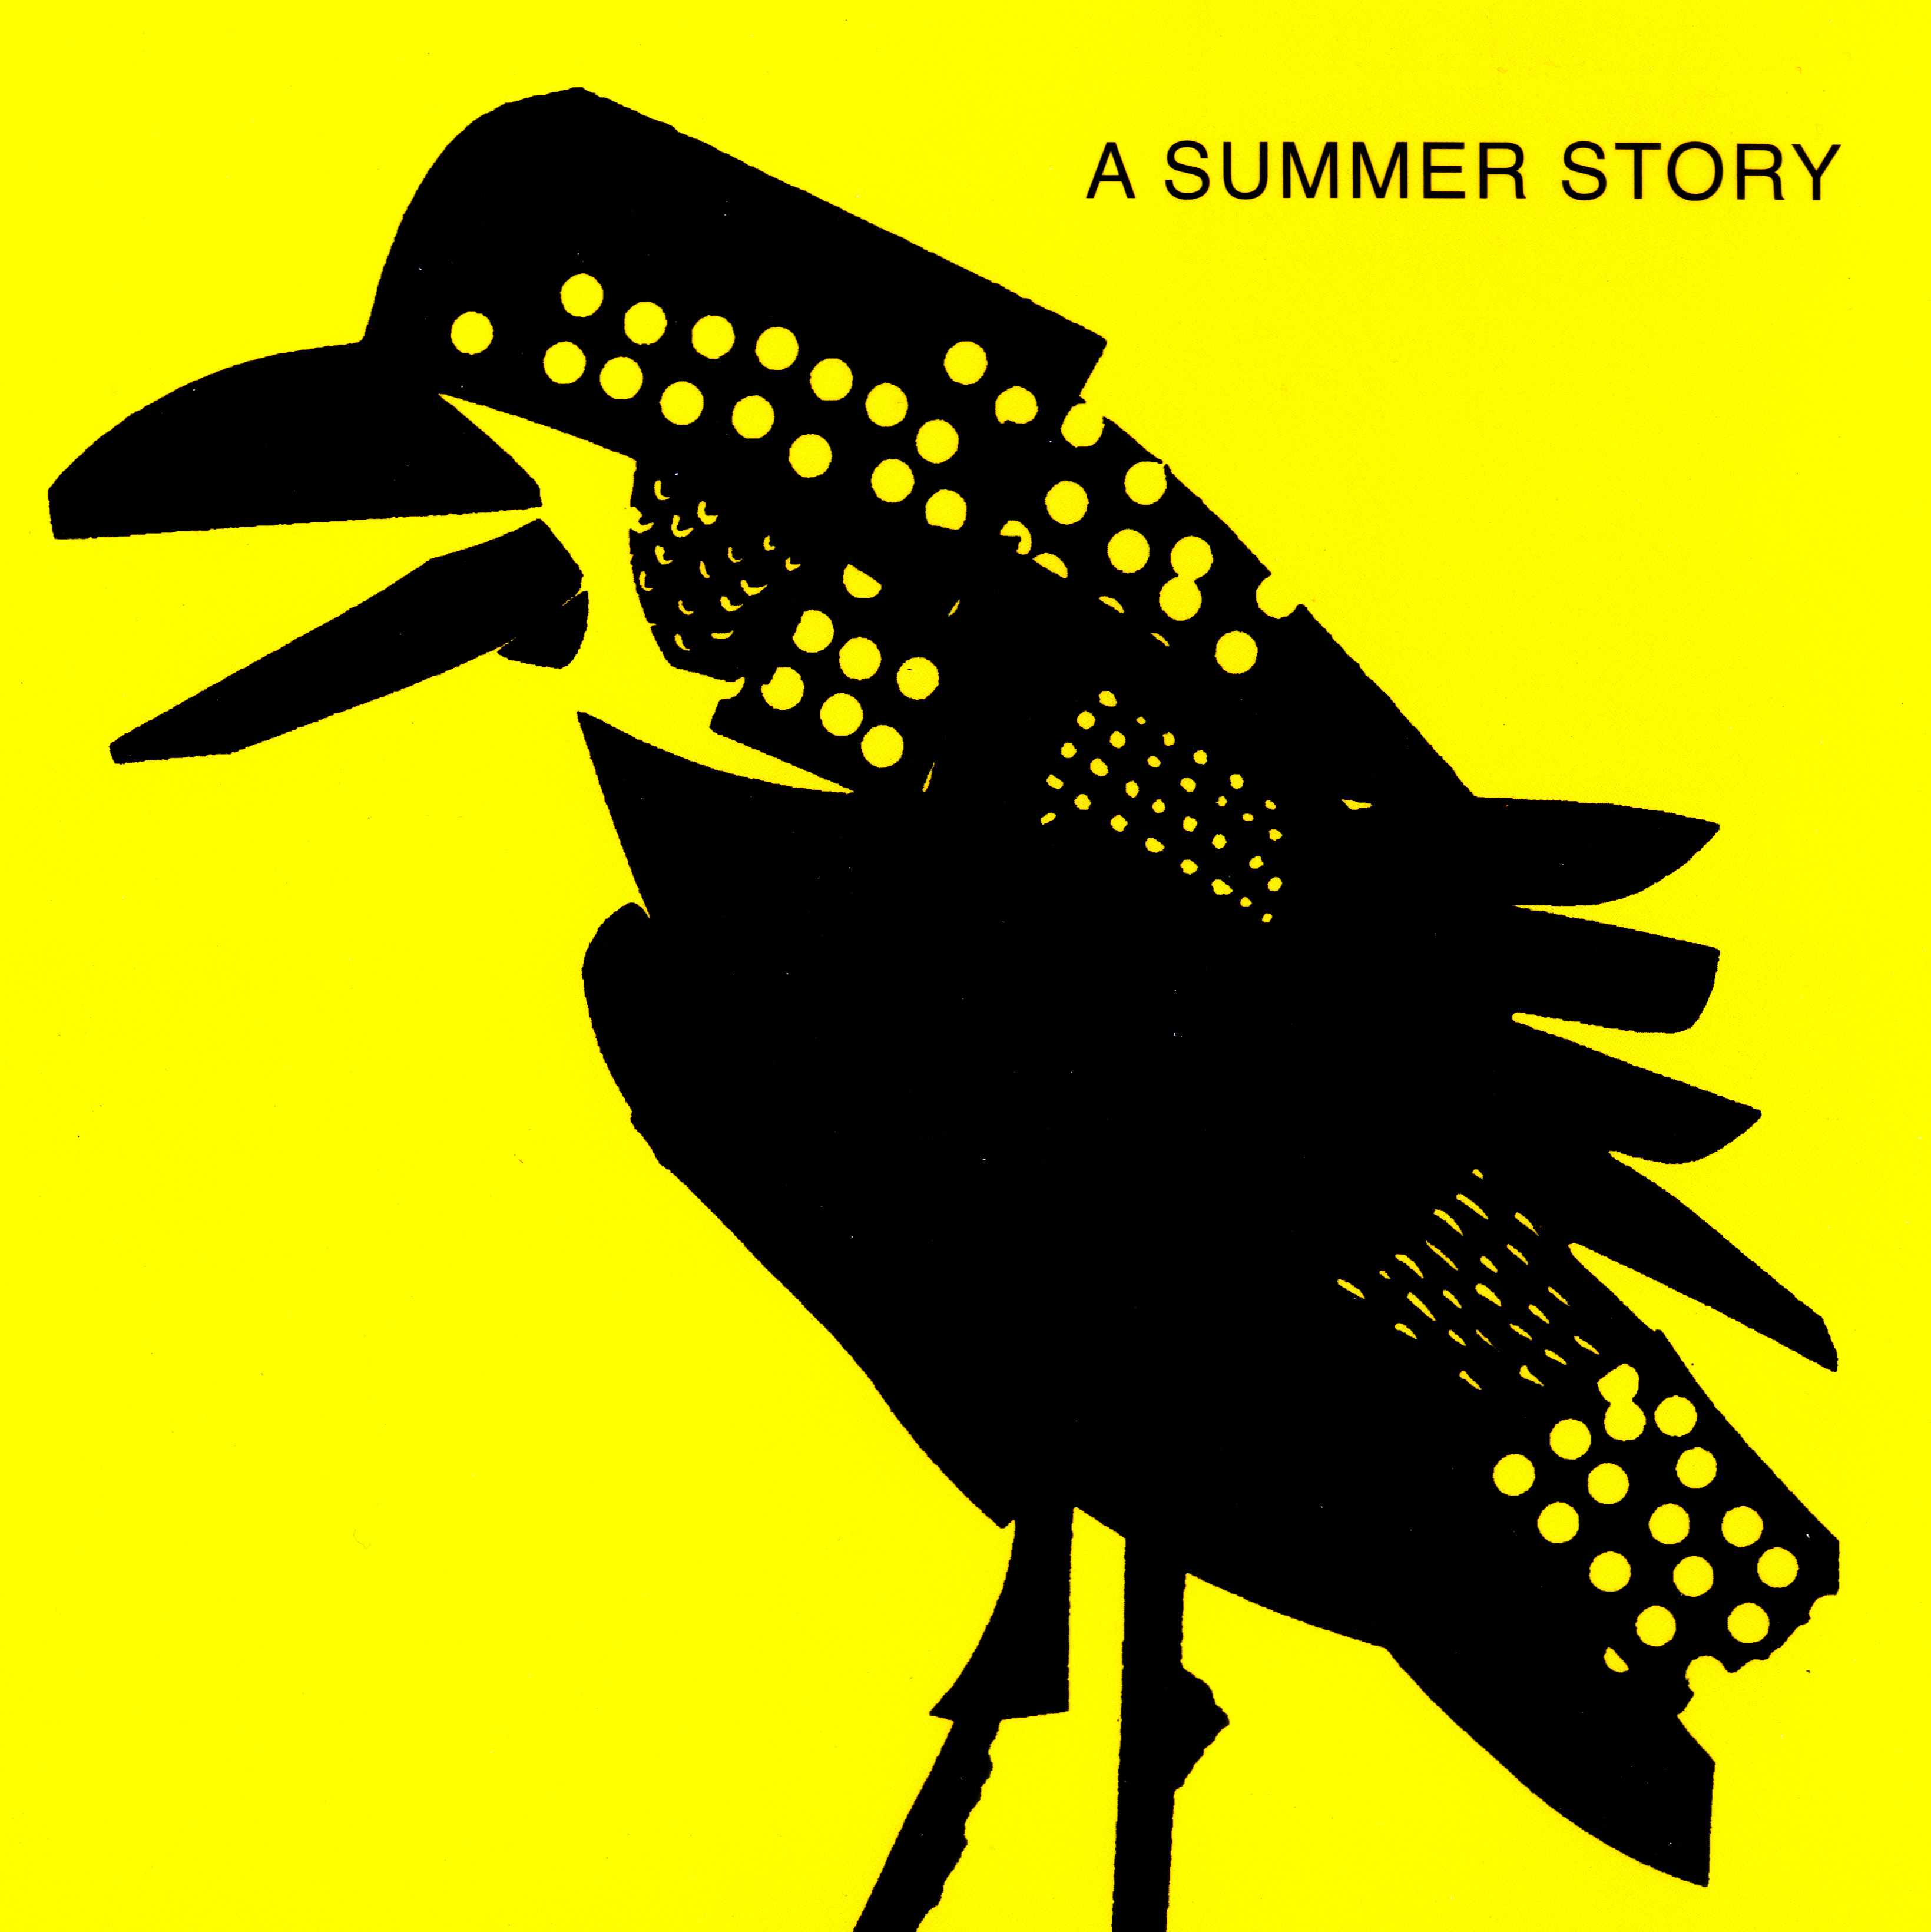 A Summer Story by K. G. Subramanyan | Seagull Books